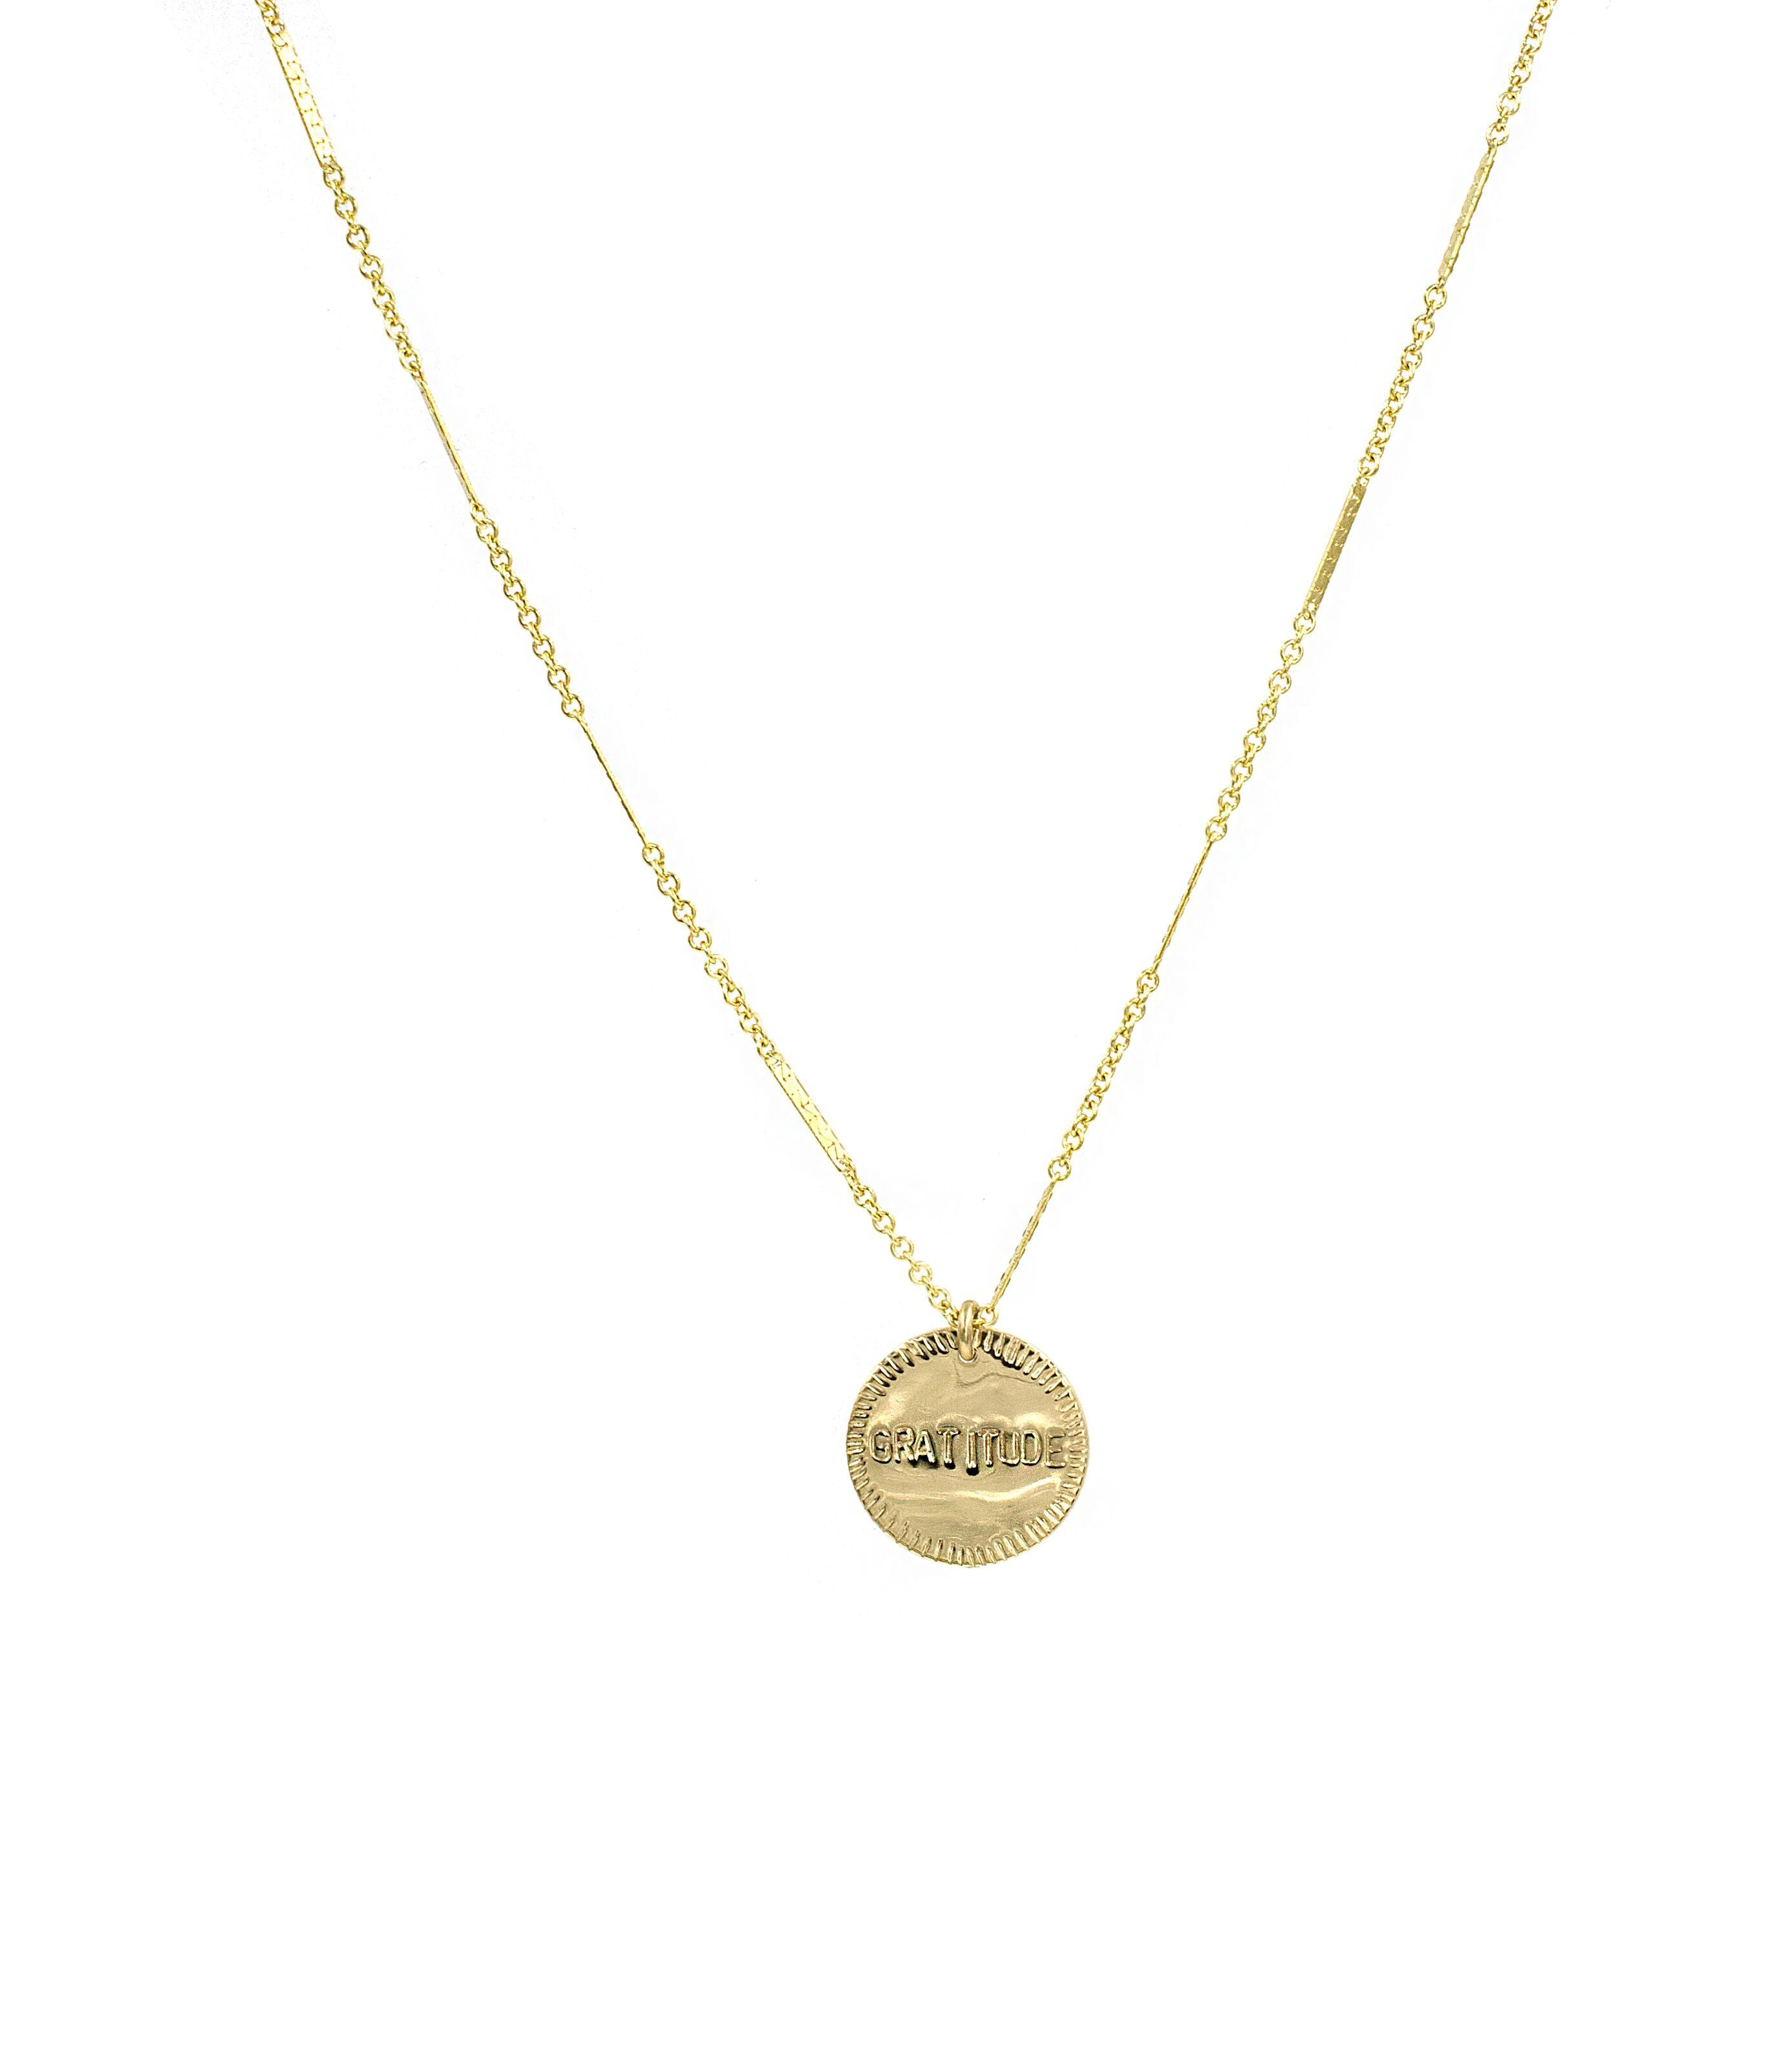 Load image into Gallery viewer, Gratitude Necklace by Paradigm Design